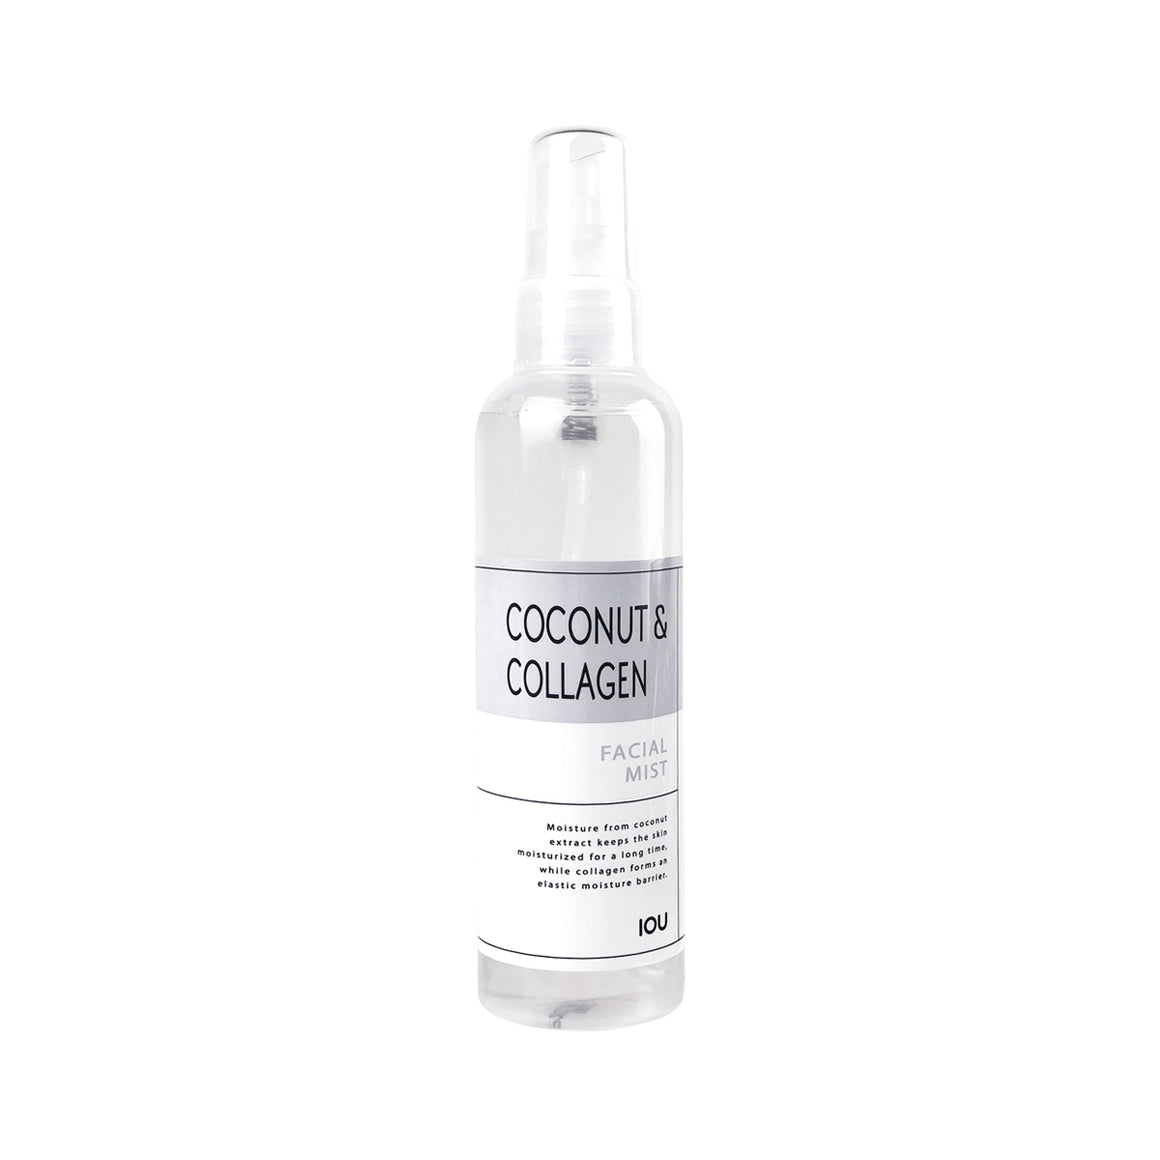 Coconut & Collagen Facial Mist